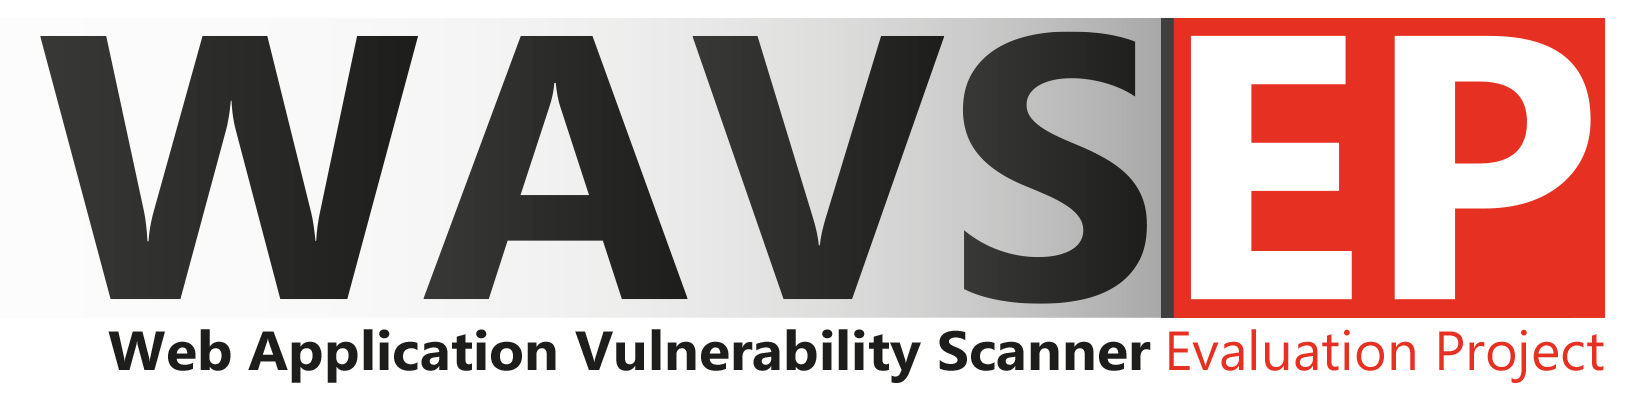 The Web Application Vulnerability Scanner Evaluation Project